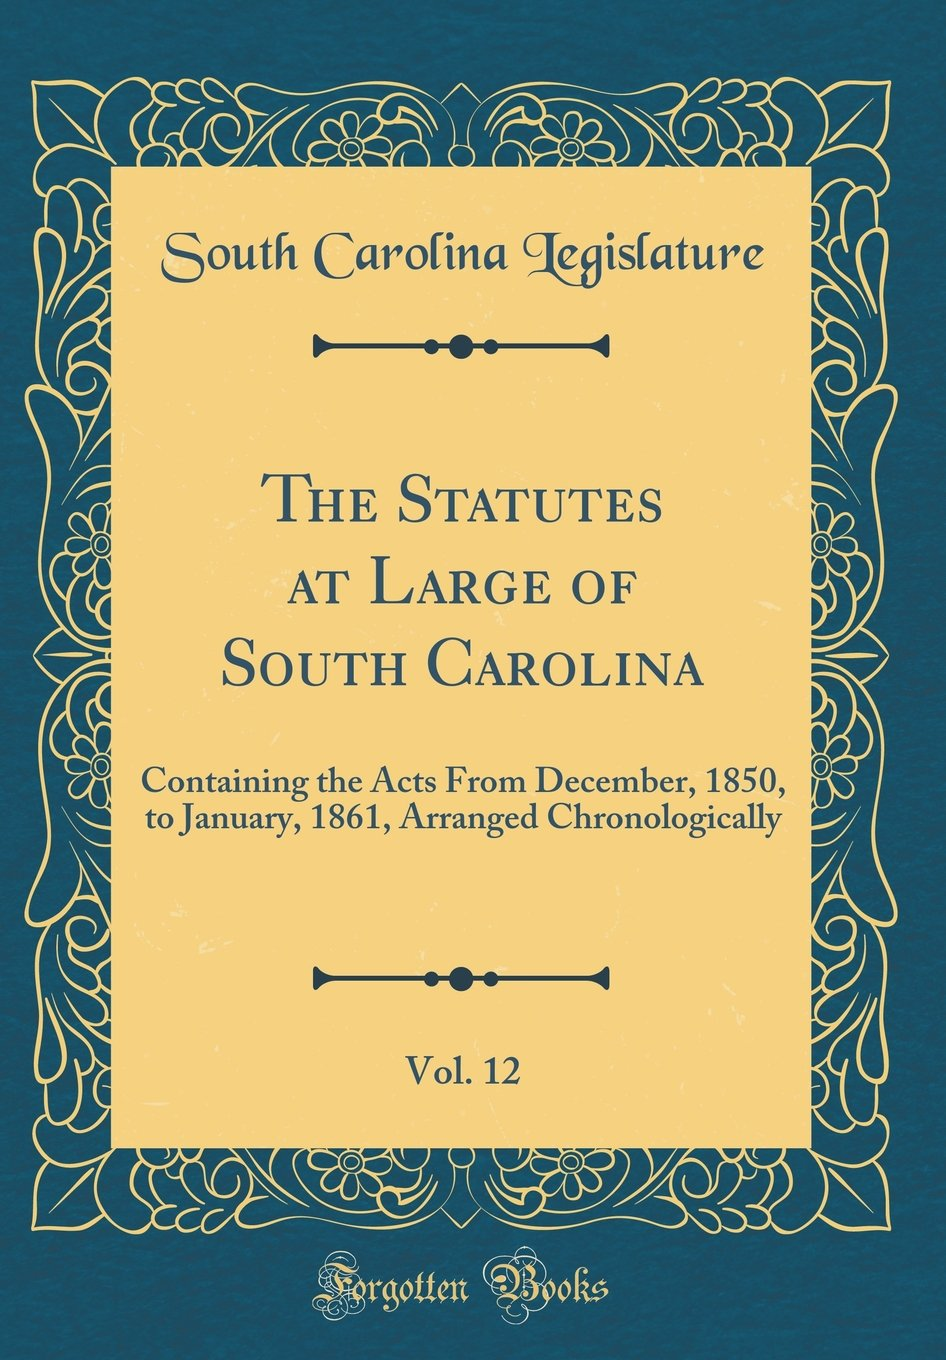 Download The Statutes at Large of South Carolina, Vol. 12: Containing the Acts from December, 1850, to January, 1861, Arranged Chronologically (Classic Reprint) pdf epub